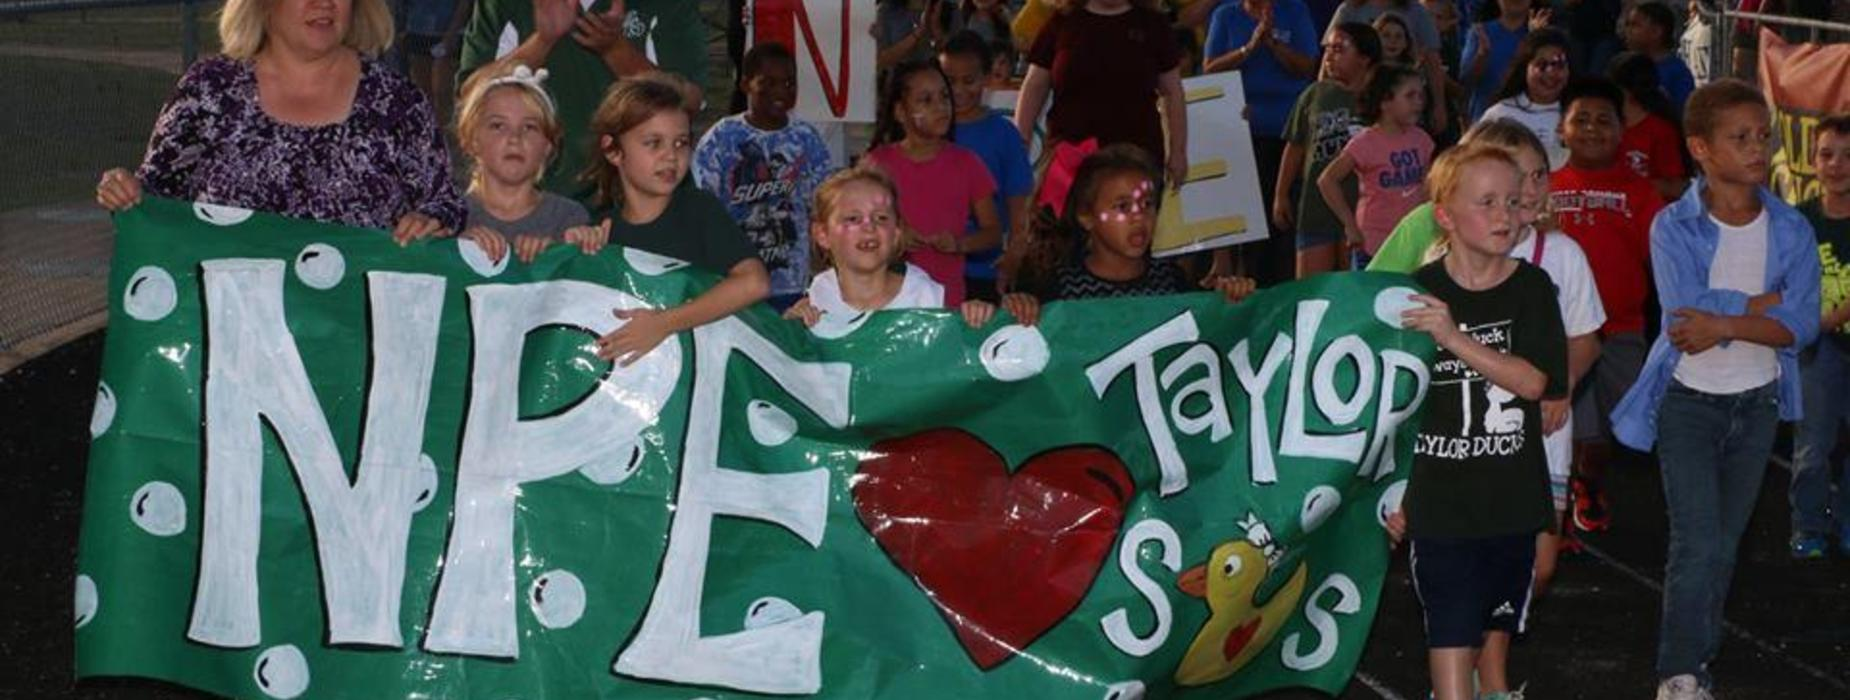 NPE banner with students